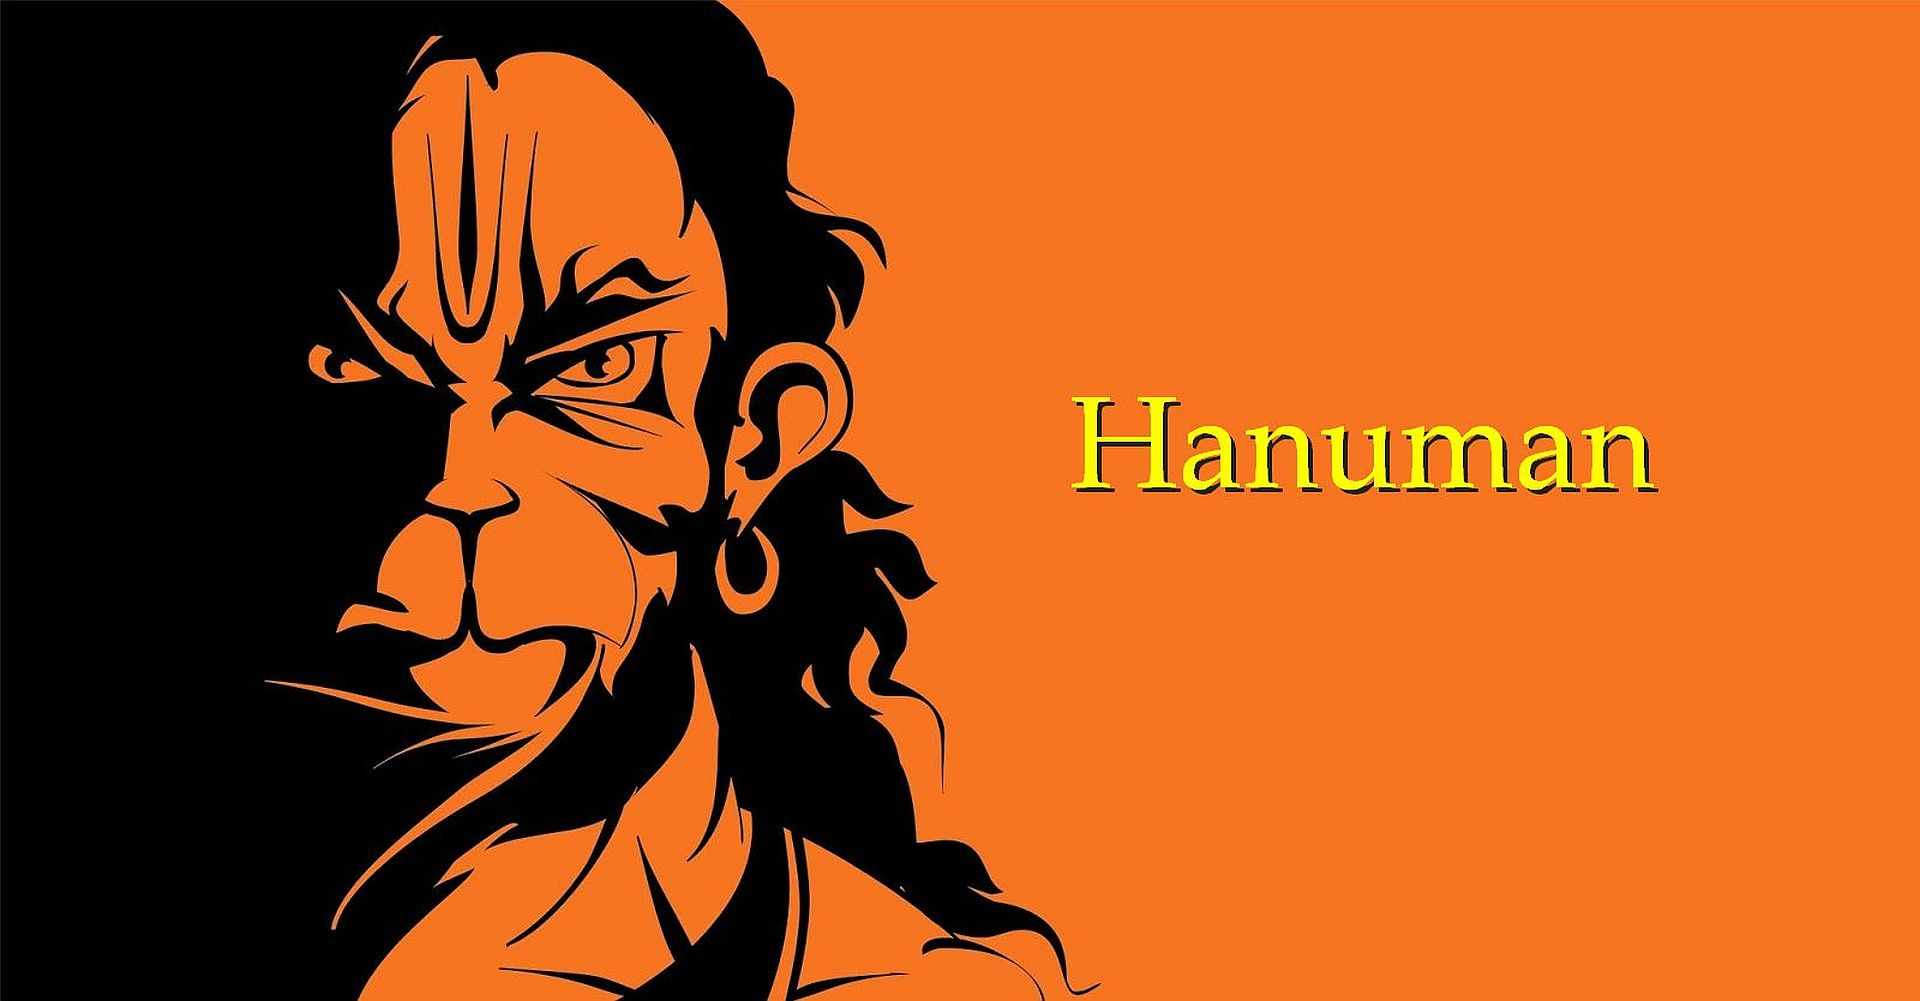 Hanuman Hd Wallpapers 1080p